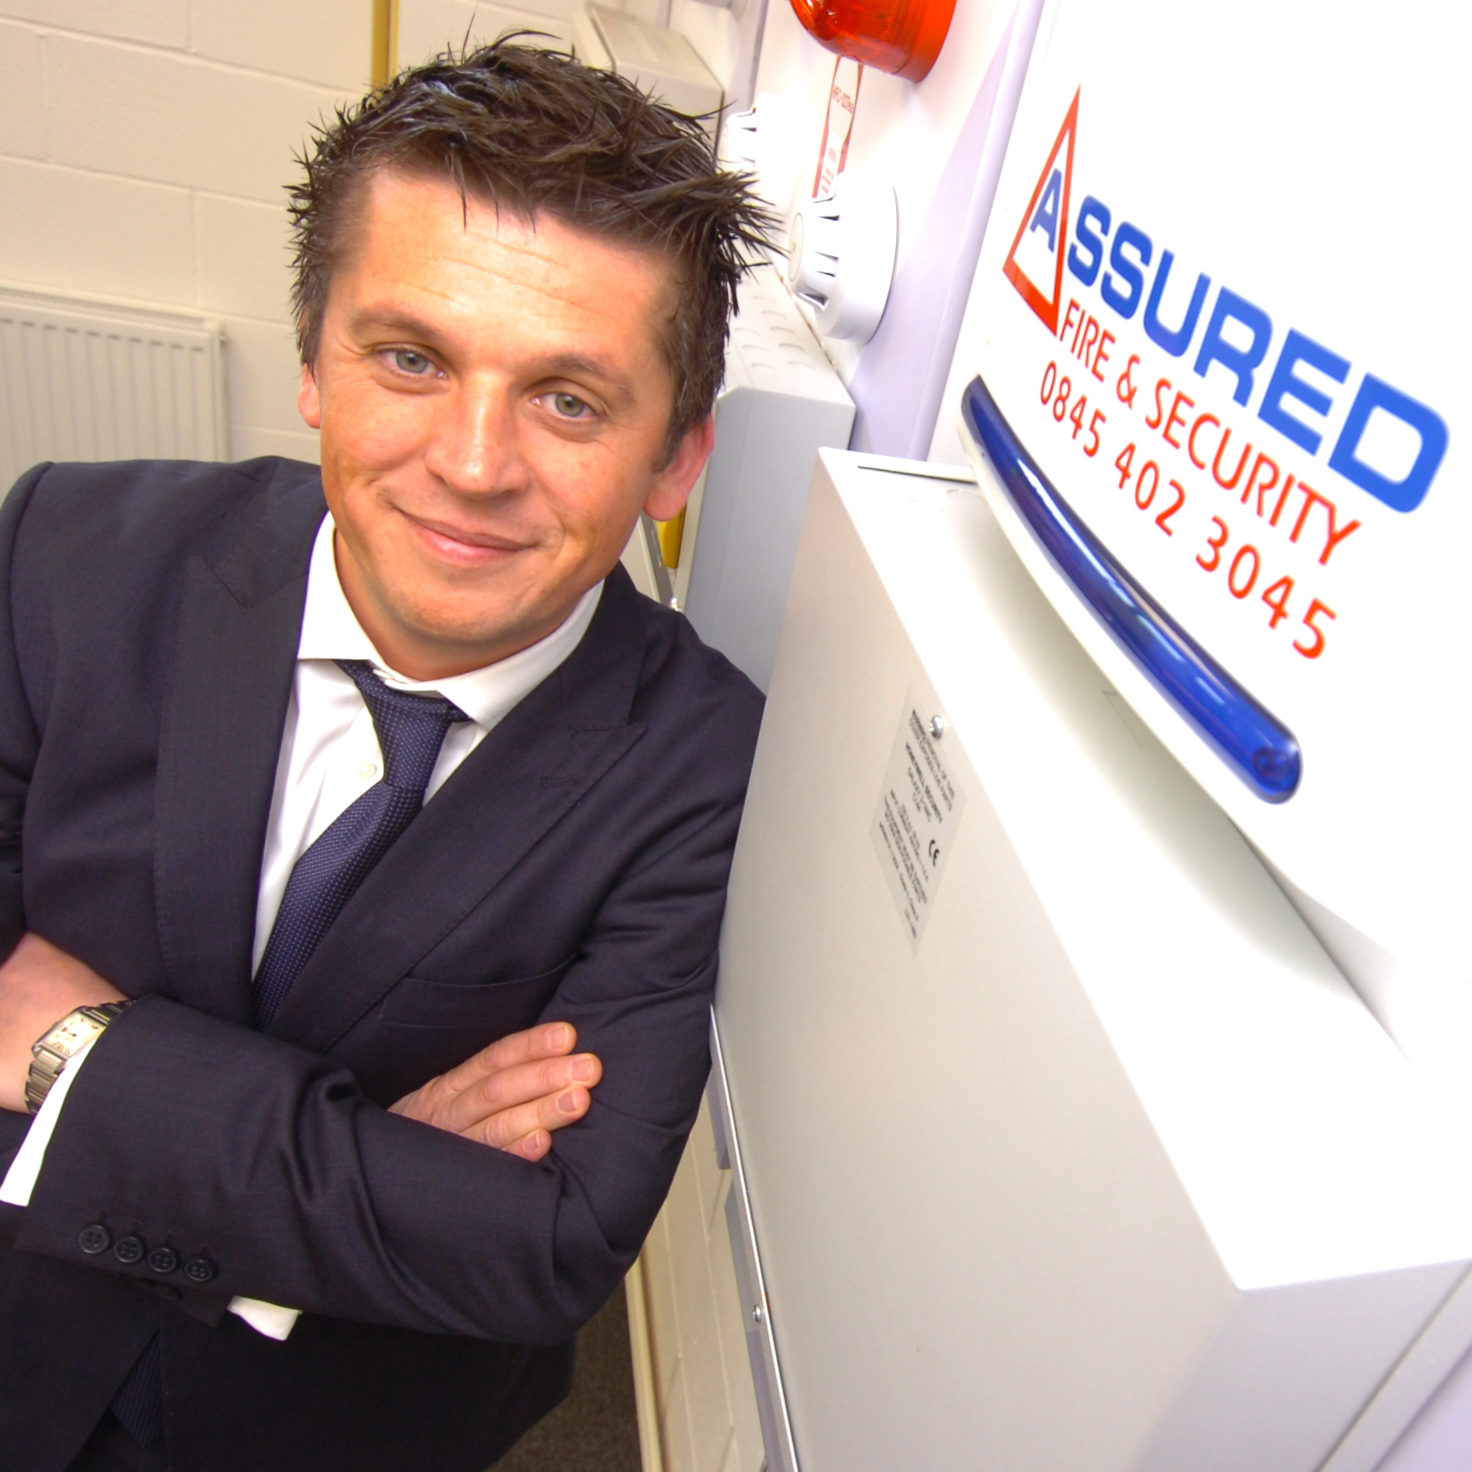 Simon Stokes, of Assured Fire and Security at Dinnington office